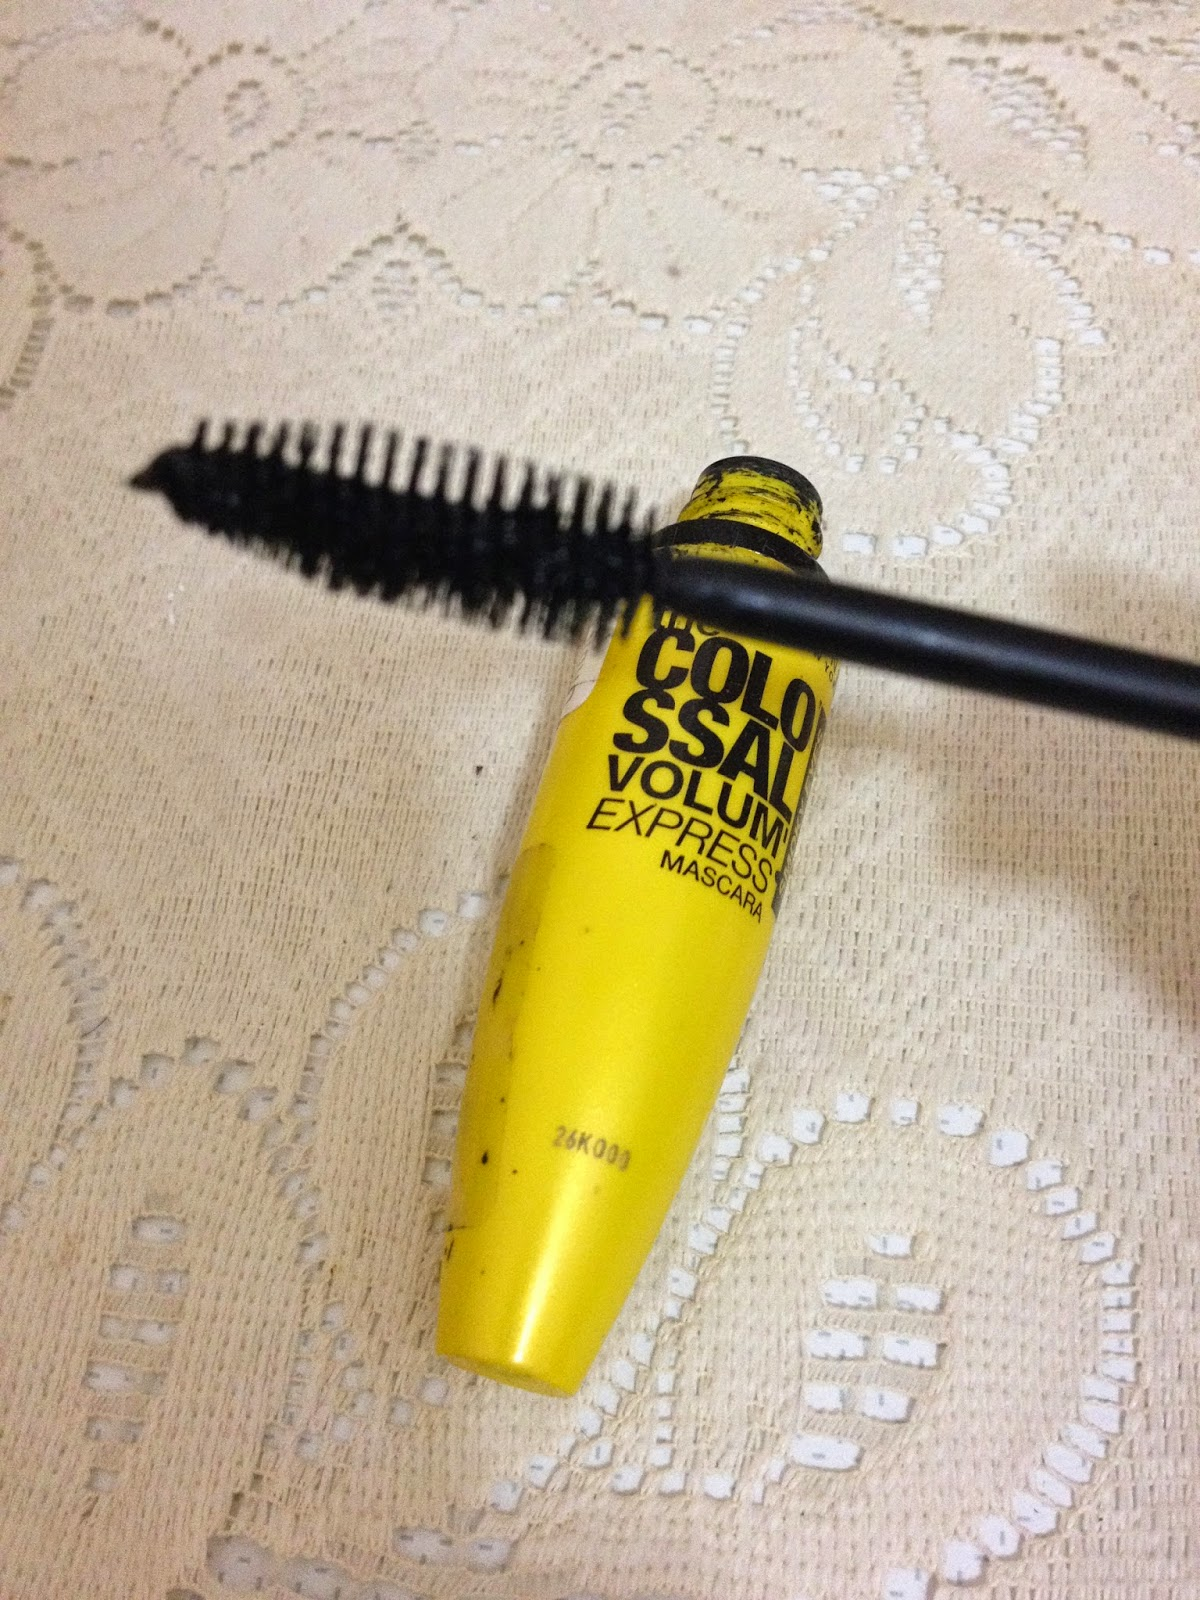 Maybelline The Colorssal Volum Express Mascara